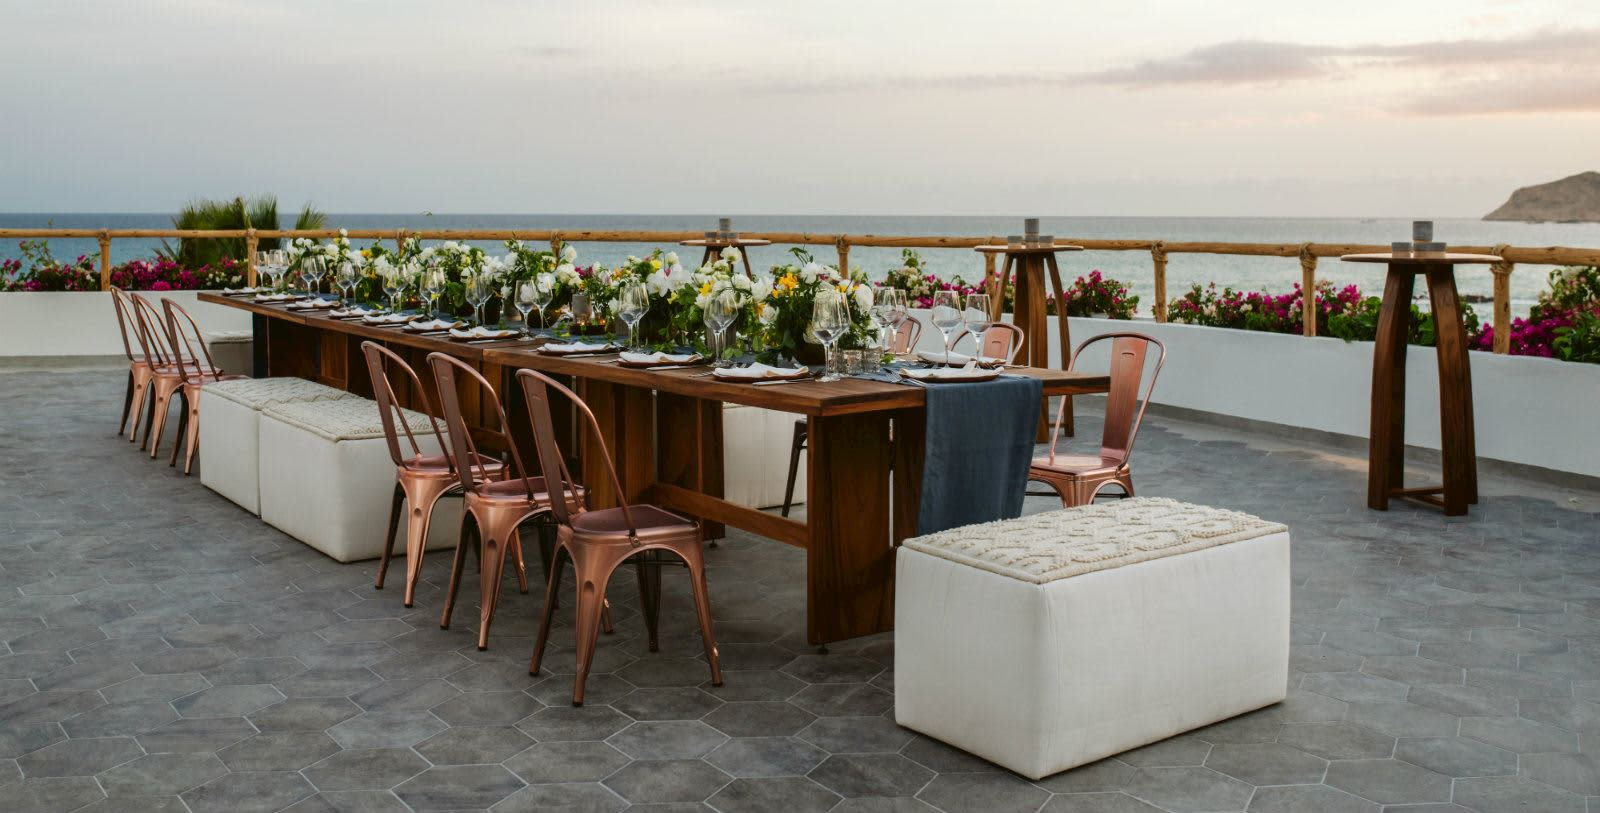 Encanto Terrace Venue